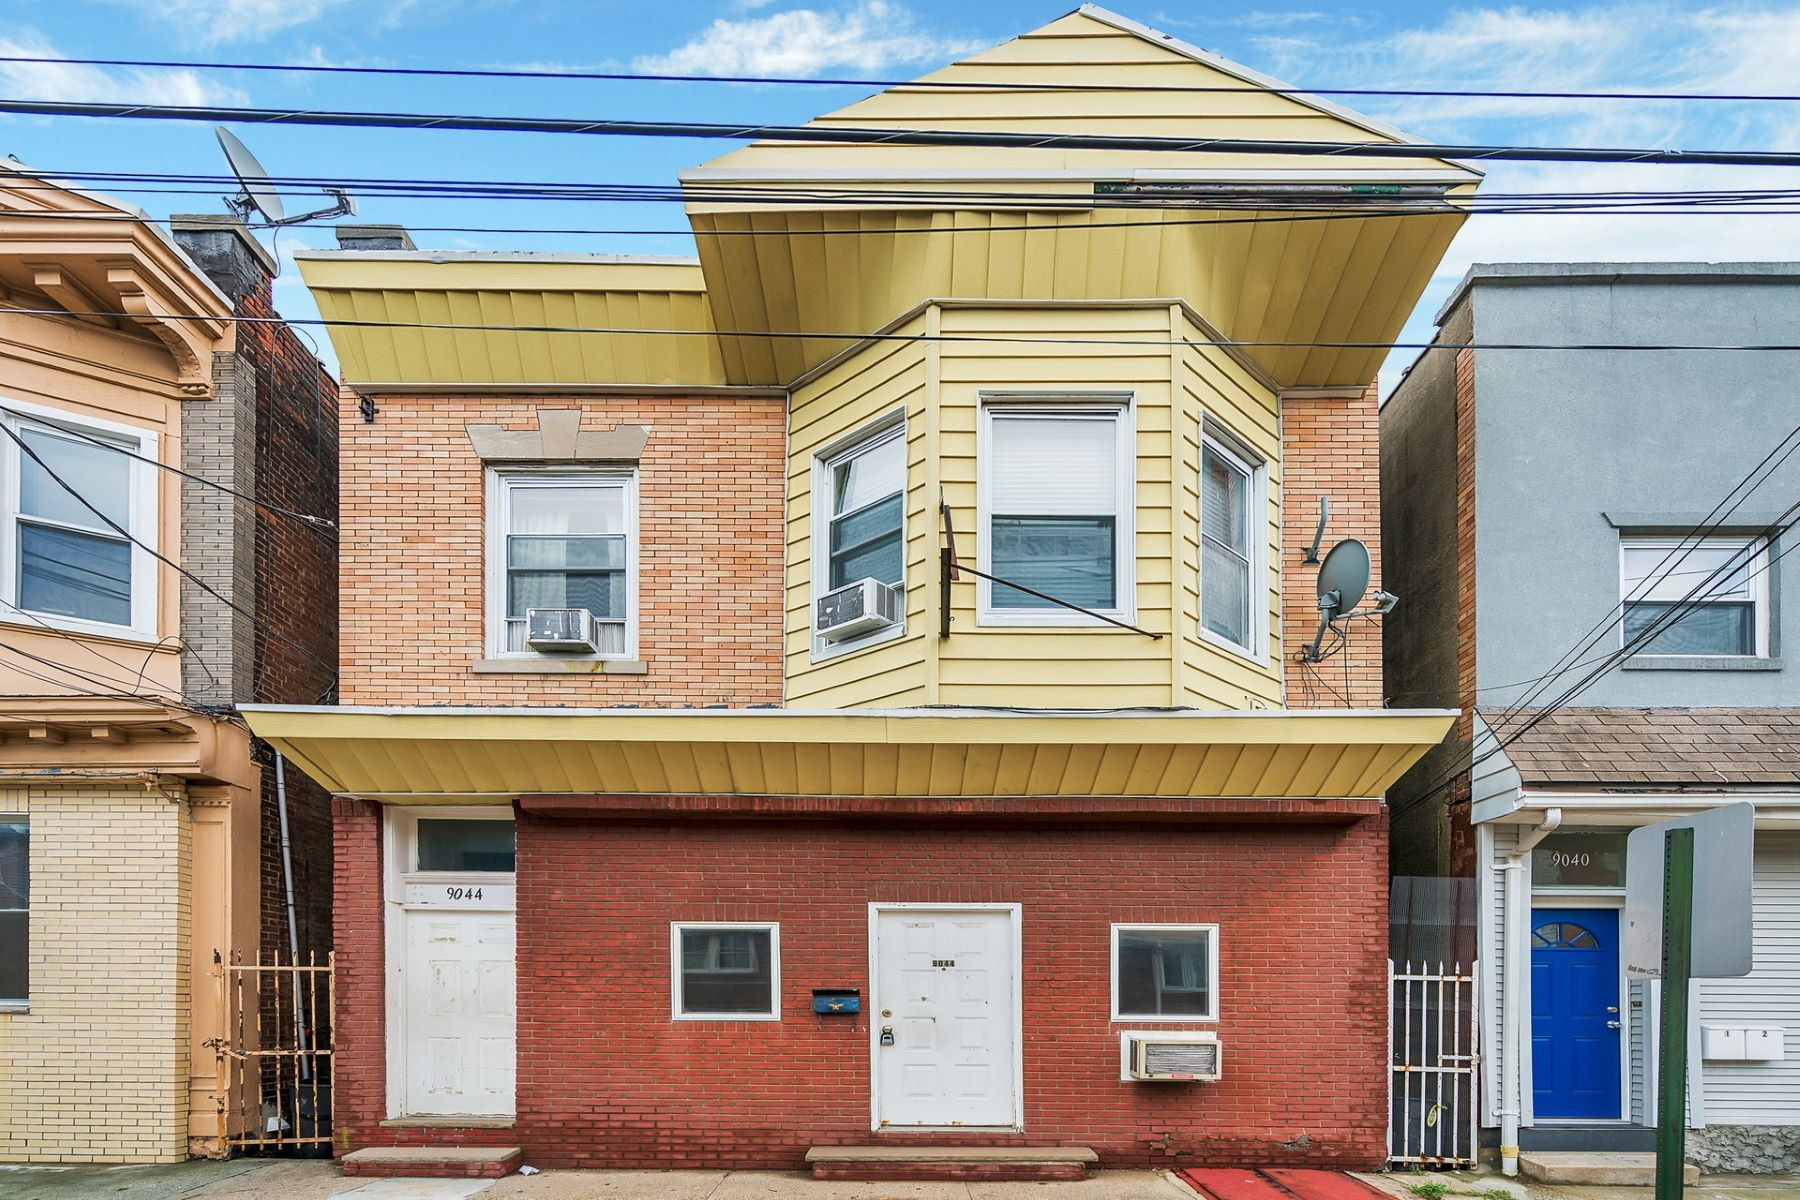 Multi-Family Home for Sale at Great Investment Property 9044 Palisade Plz, North Bergen, New Jersey 07047 United States